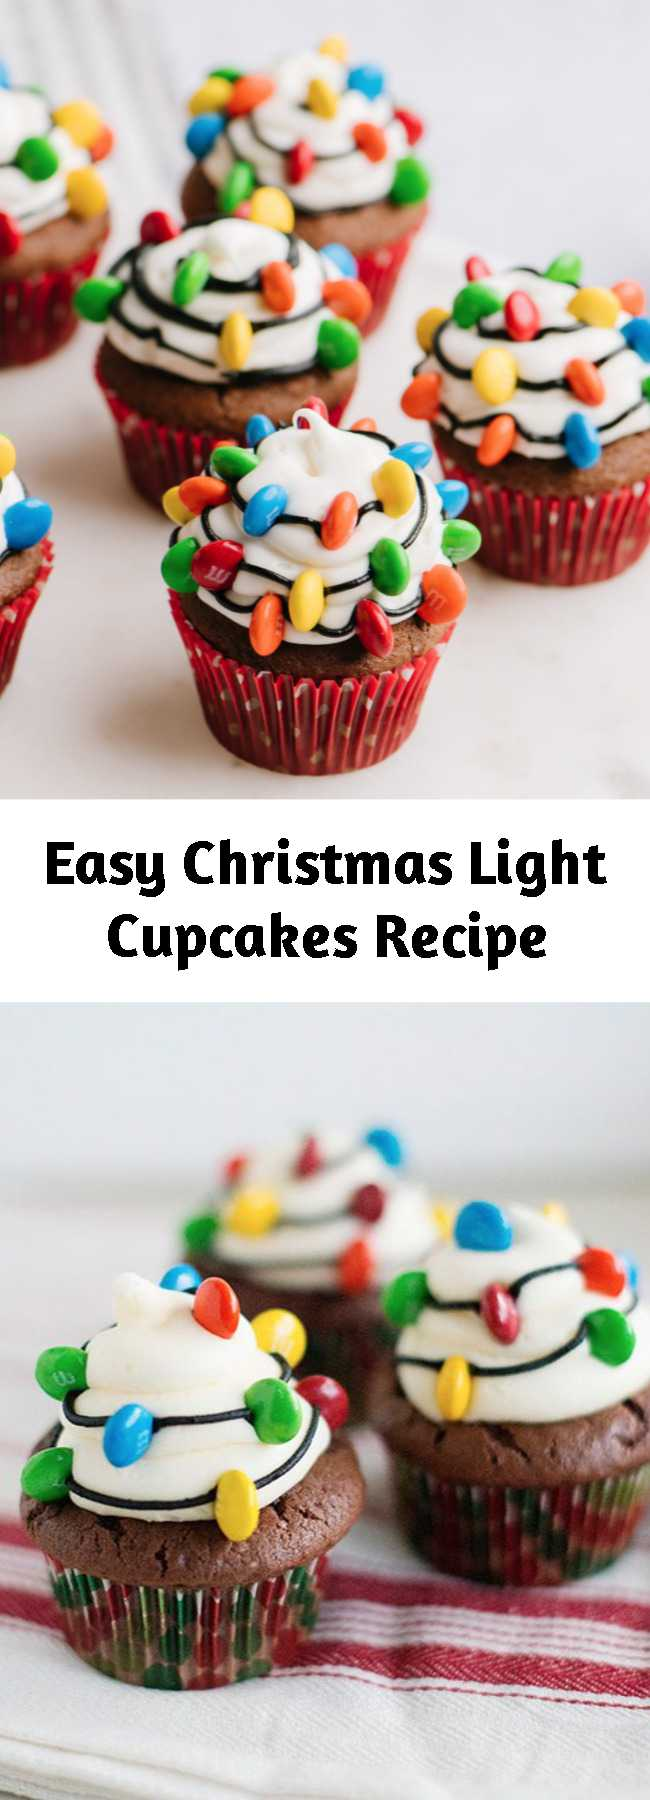 Easy Christmas Light Cupcakes Recipe - These Christmas Light Cupcakes are made with an embellished chocolate cake mix and the best vanilla buttercream frosting. They are adorable for Christmas and perfect for bake sales.